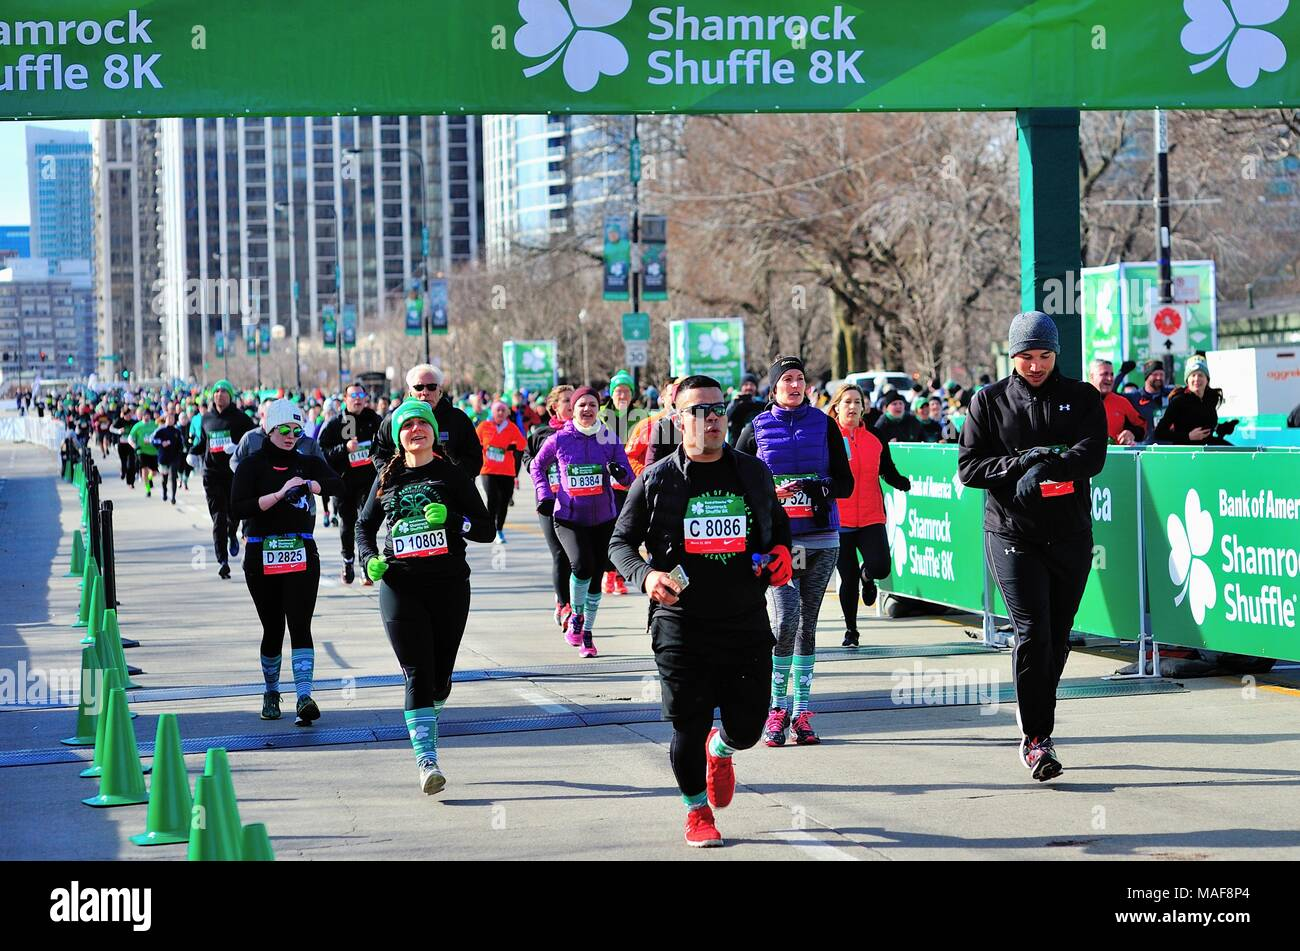 Chicago, Illinois, USA. a sea of runners crossing the finish line at the 2018 Shamrock Shuffle race in Chicago. - Stock Image